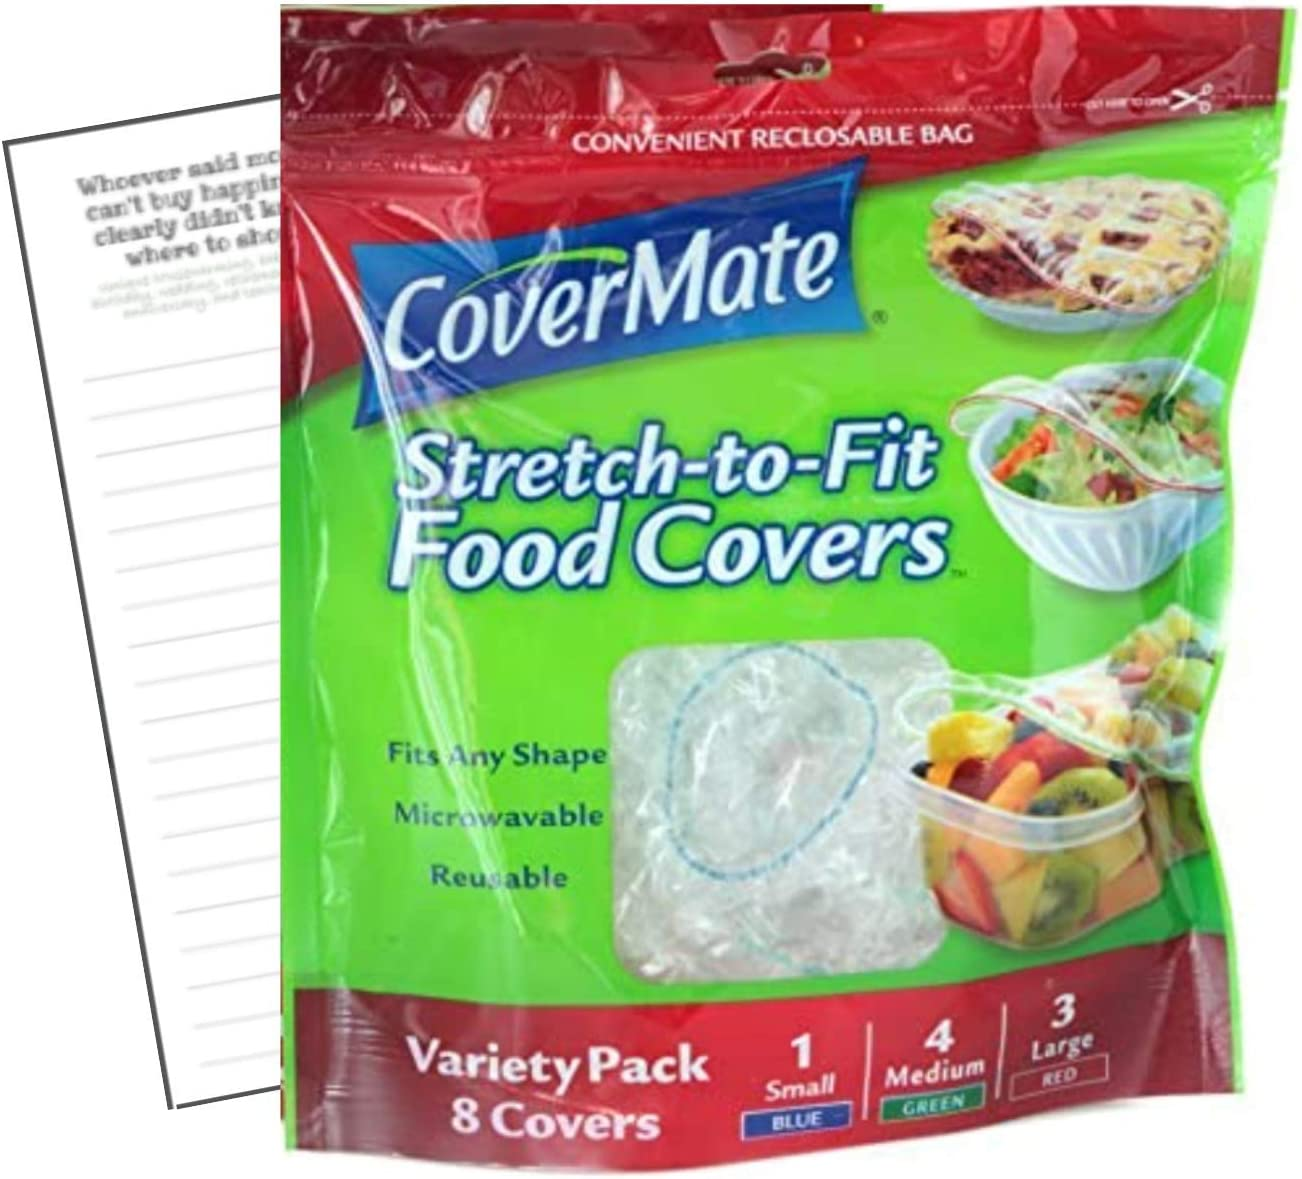 Covermate Stretch-to-fit Food Covers 1pk plus Convenient Magnetic Shopping List by Harper & Ivy Designs, Reusable, Dishwasher Safe, Microwavable, BPA/PVC Free, Great for Leftovers, Heavy Duty, 3 Sizes